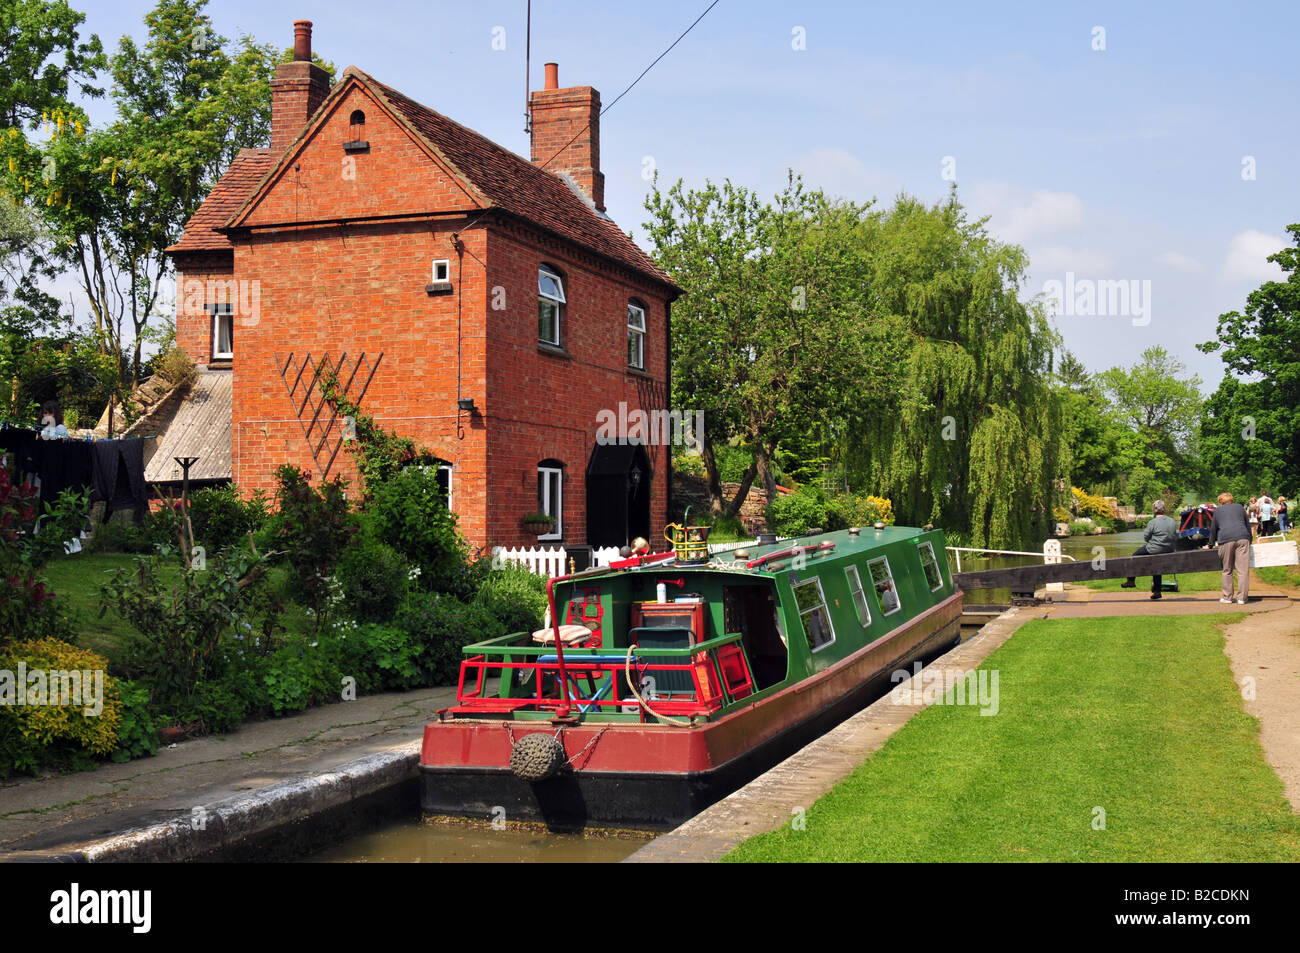 Narrowboat navigating the lock at Cropredy on the Oxford canal, Oxfordshire - Stock Image